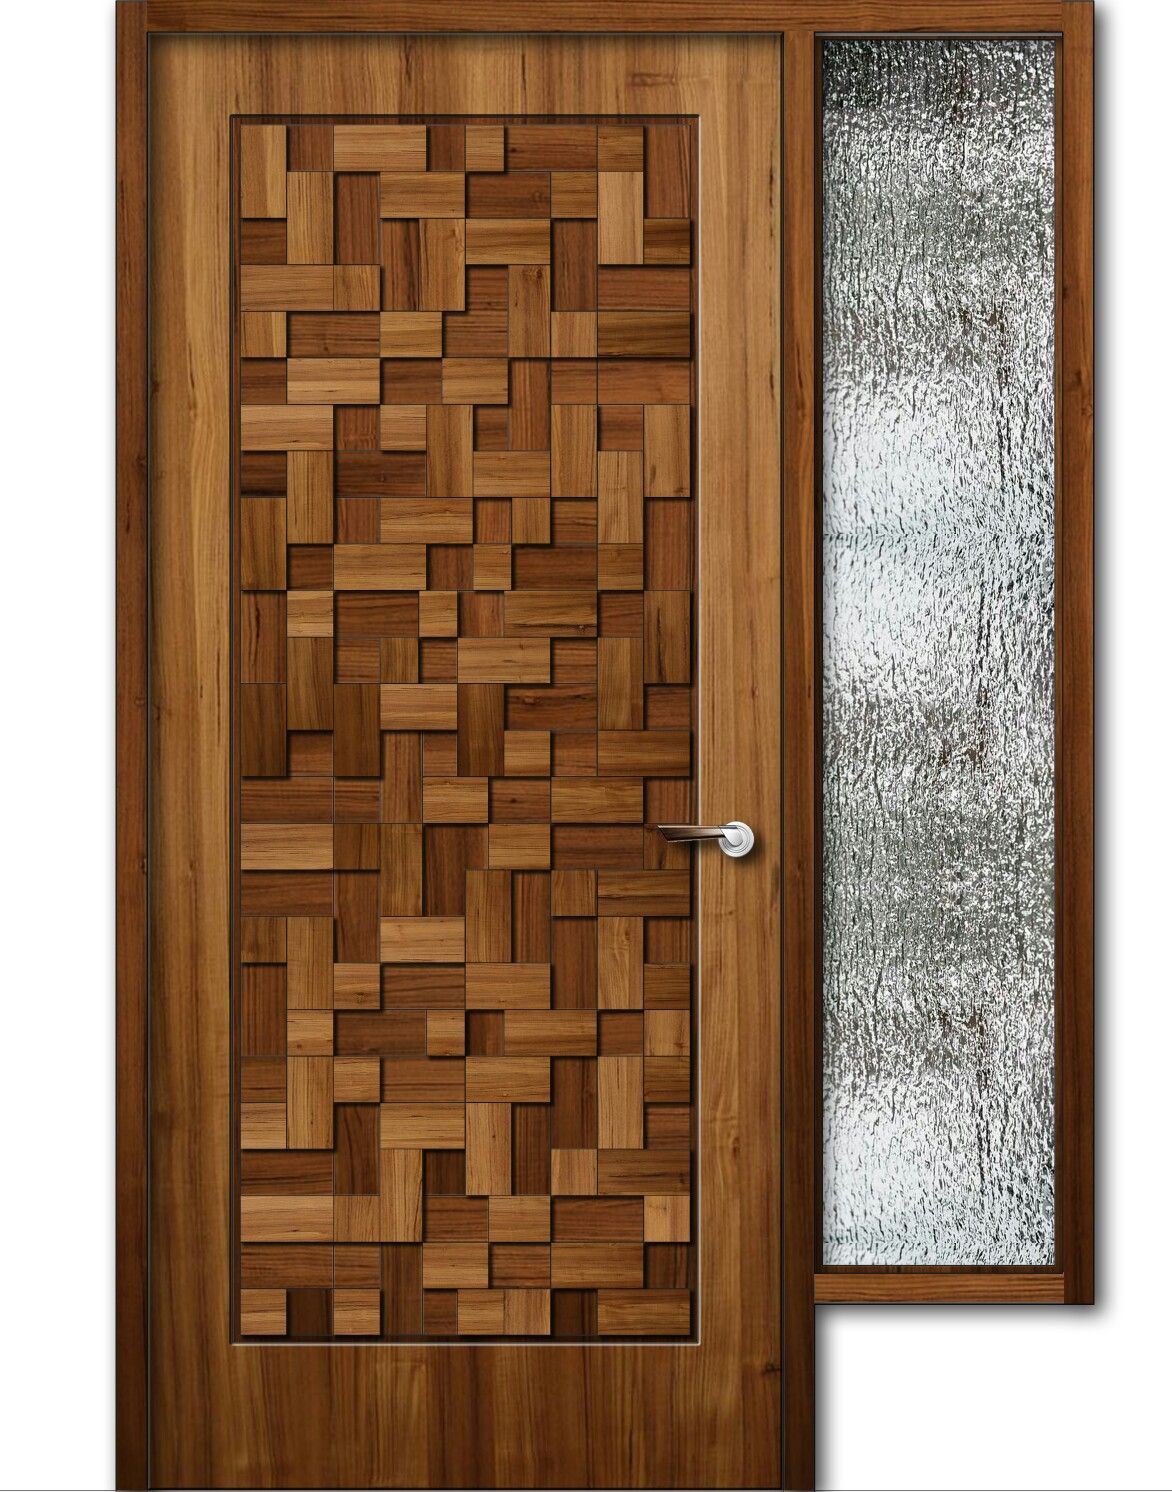 Teak wood finish wooden door with window 8feet height & Teak wood finish wooden door with window 8feet height | Doors ...